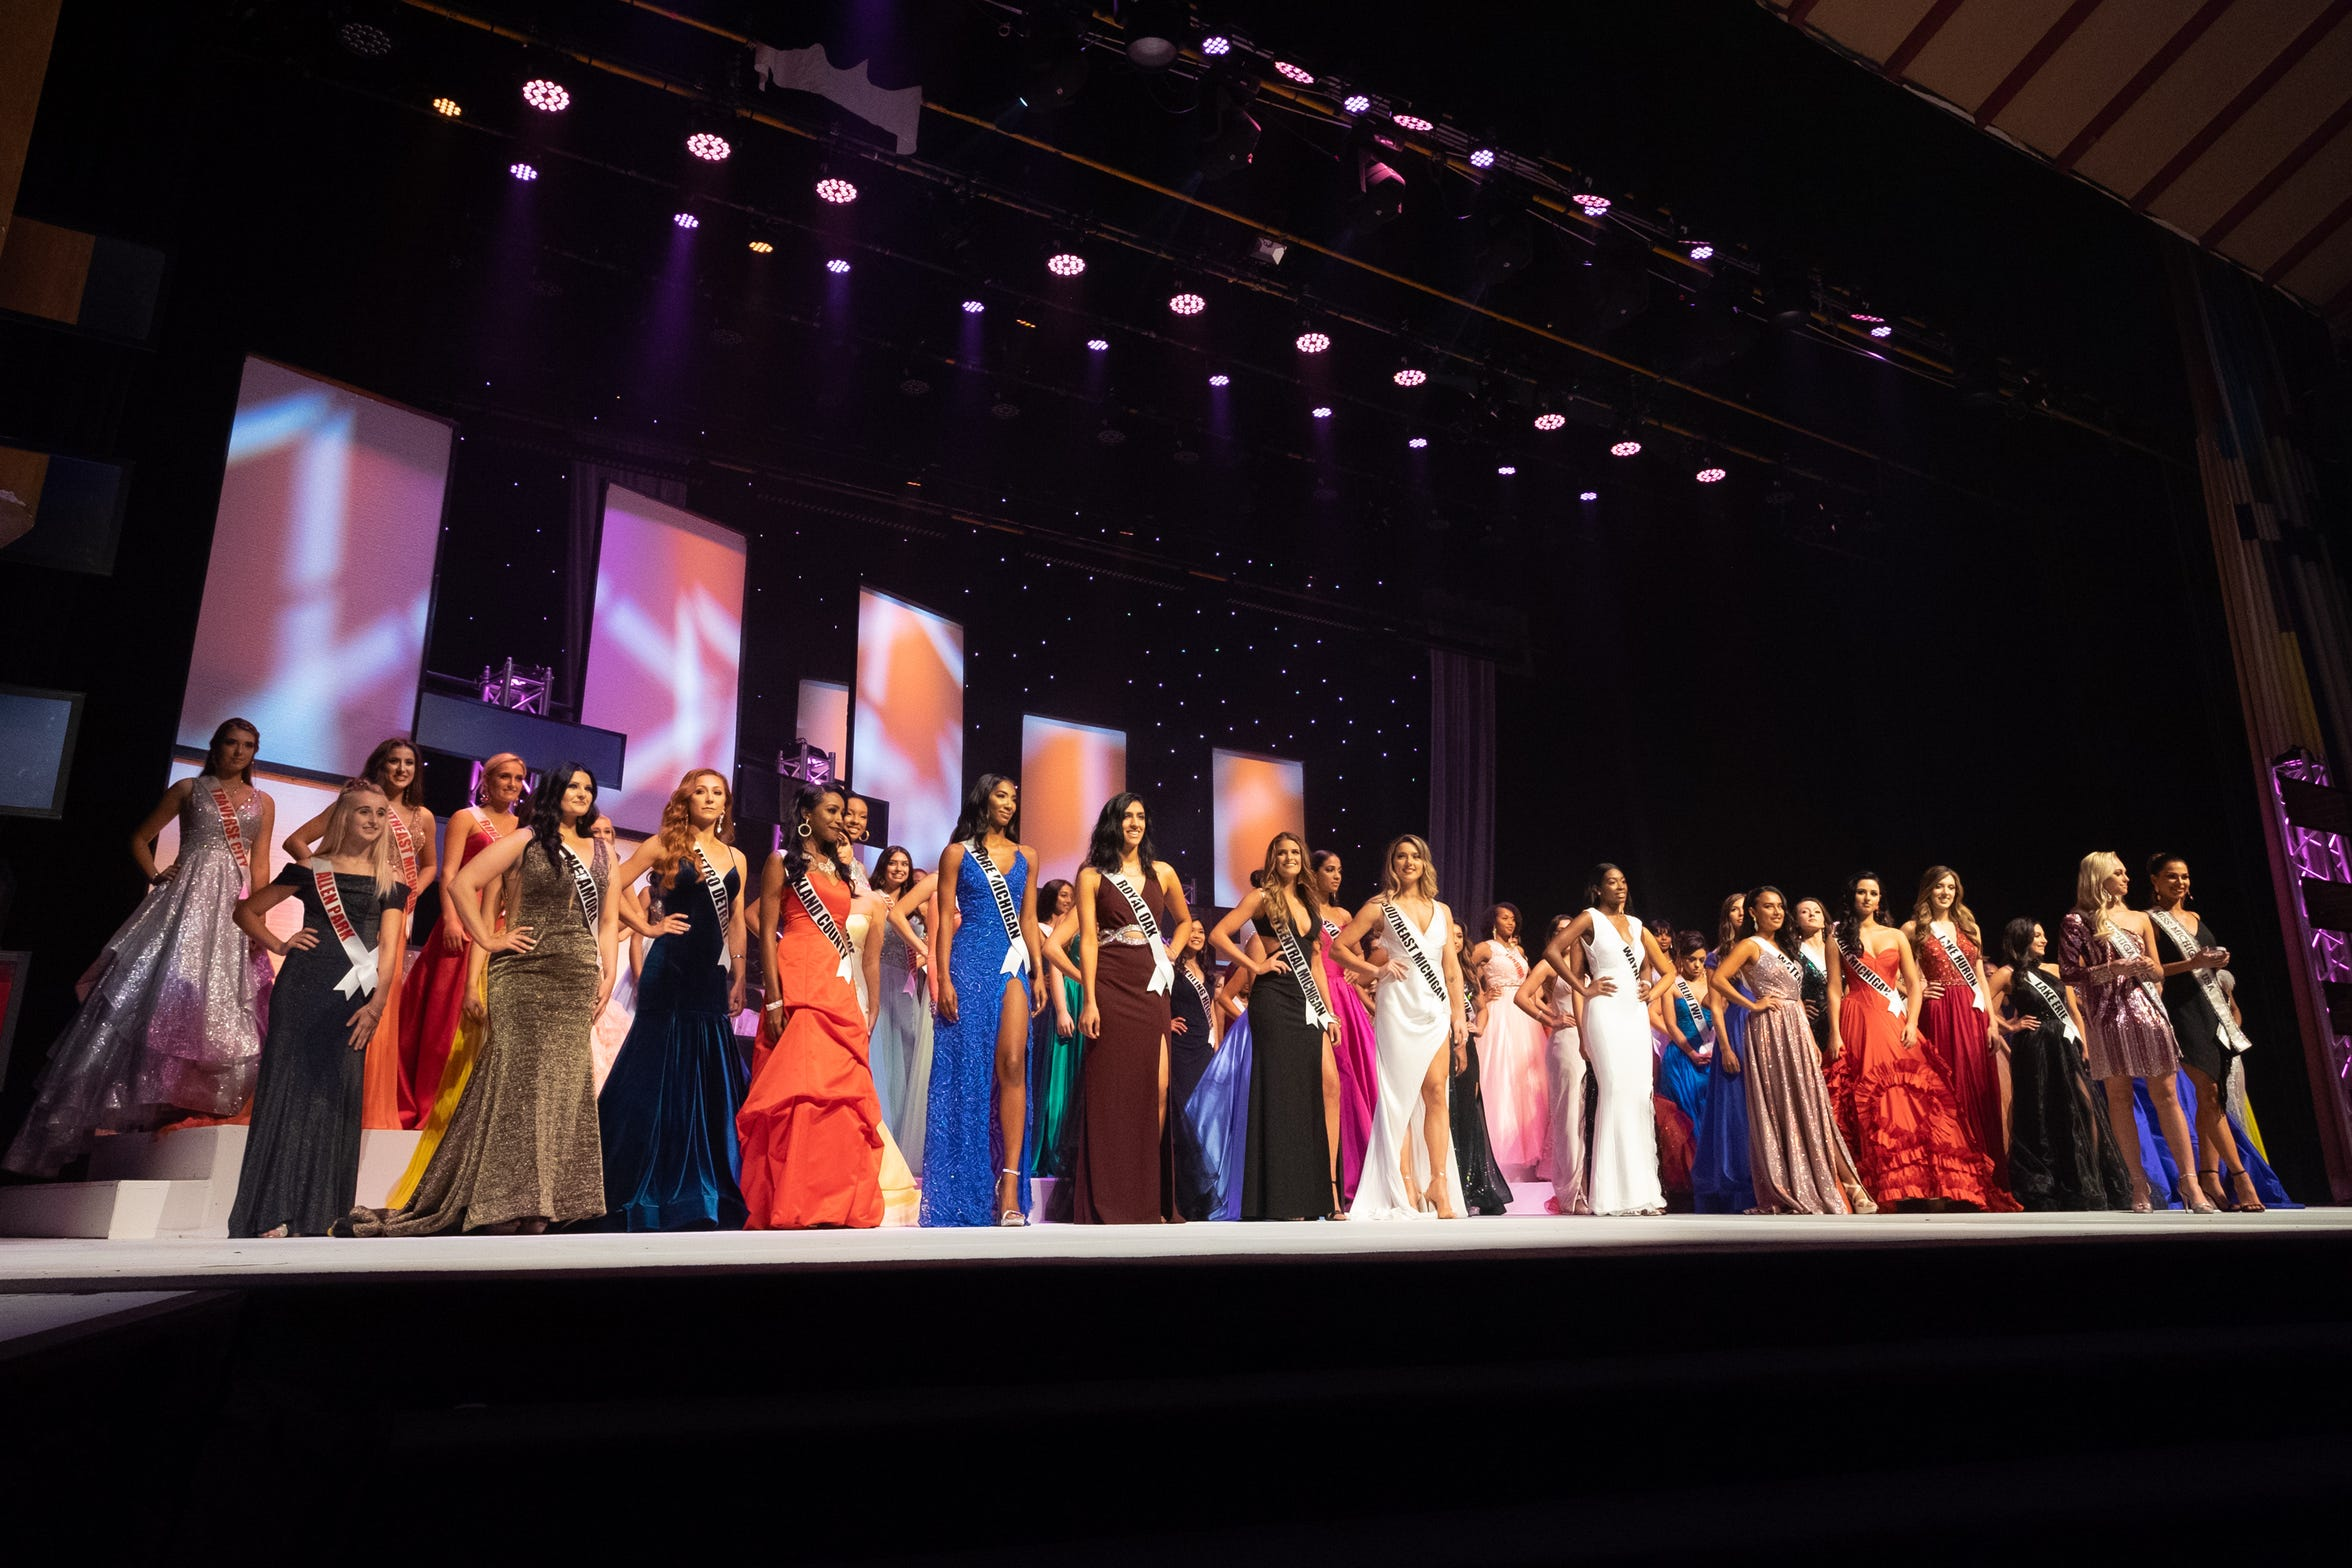 The full group of Miss and Miss Teen Michigan contestants take the stage at McMorran Theater Saturday, Sept. 21, 2019, during the Miss Michigan USA and Miss Michigan Teen USA competitions.